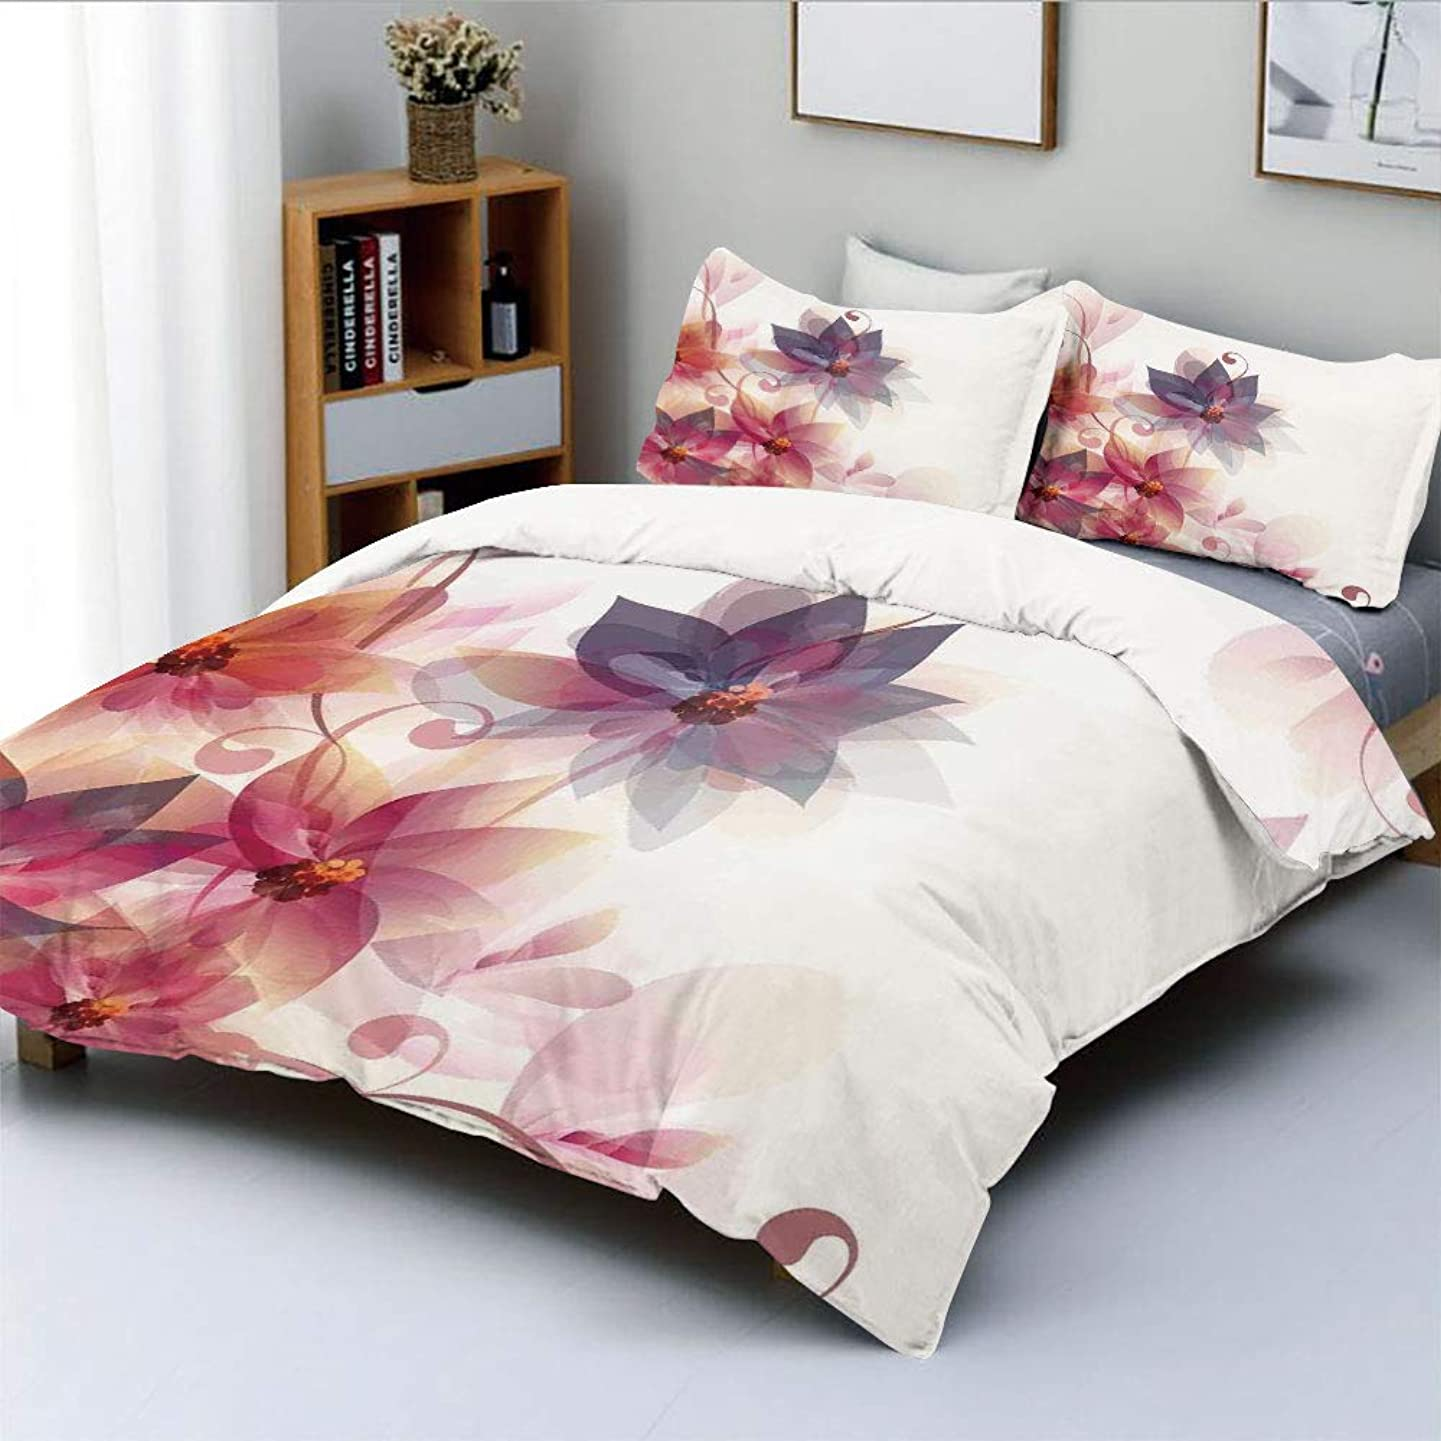 Duplex Print Duvet Cover Set King Size,Modern Floral Design with Burts and Leaves Detail Romantic ImageDecorative 3 Piece Bedding Set with 2 Pillow Sham,Pink Purple and Orange,Best Gift For Kids & Adu